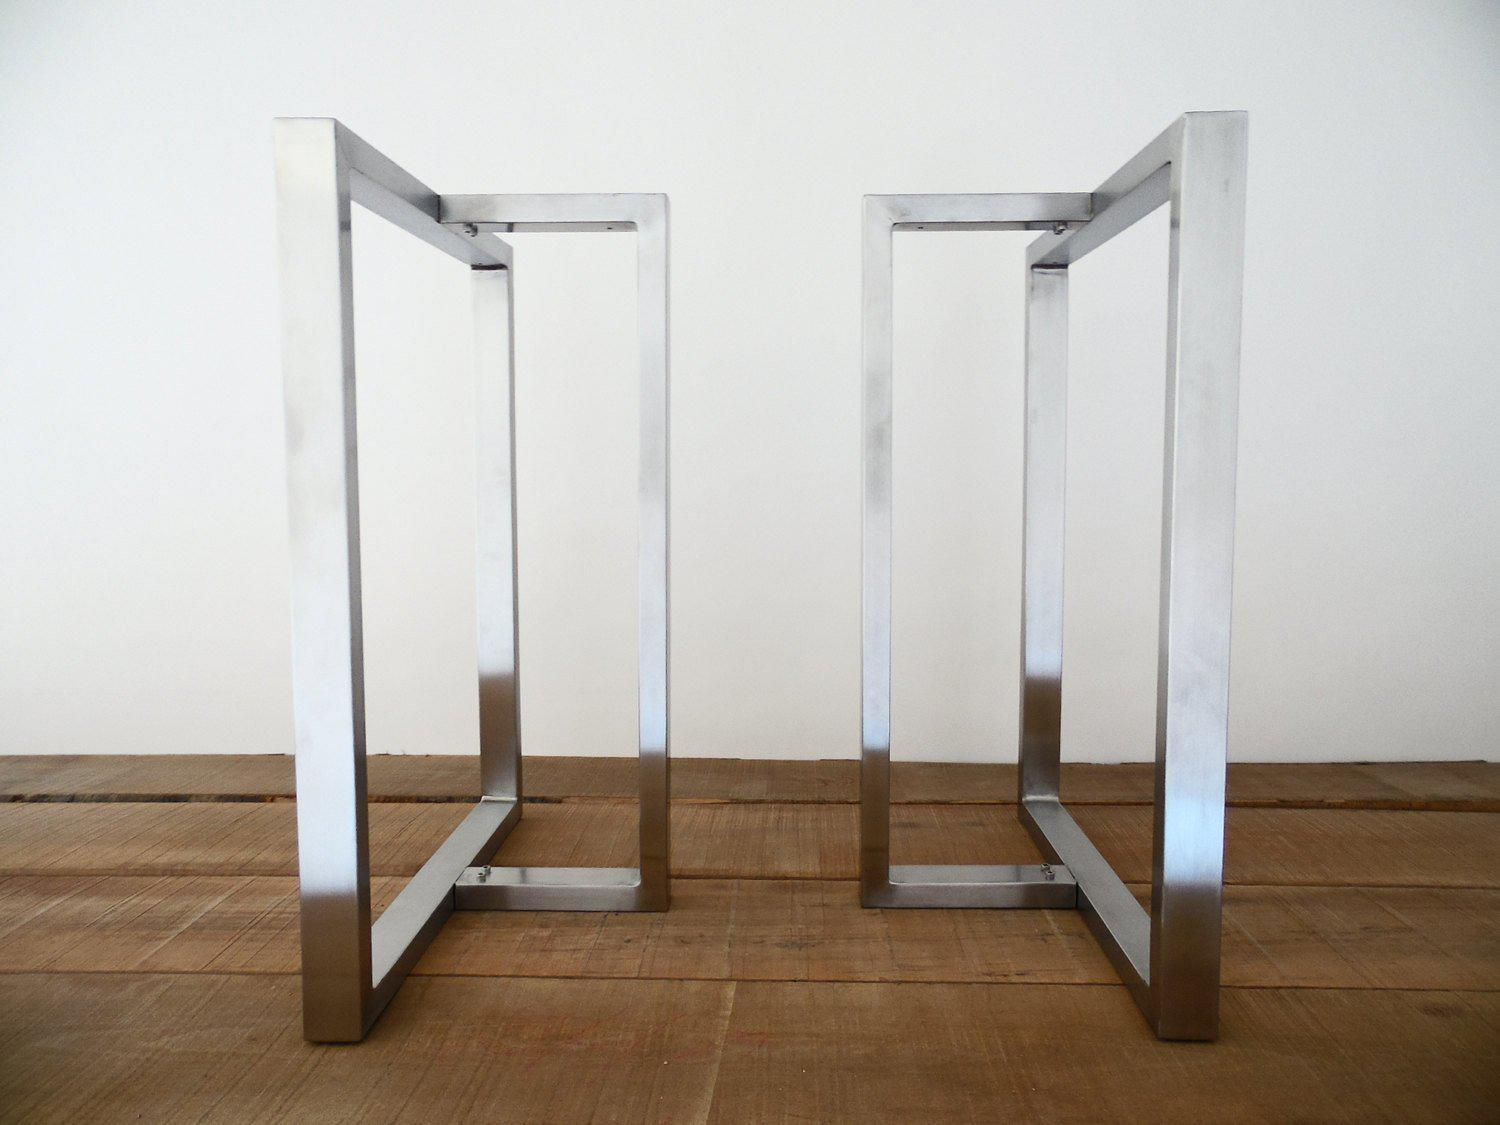 Where To Buy Table Legs Stainless Steel